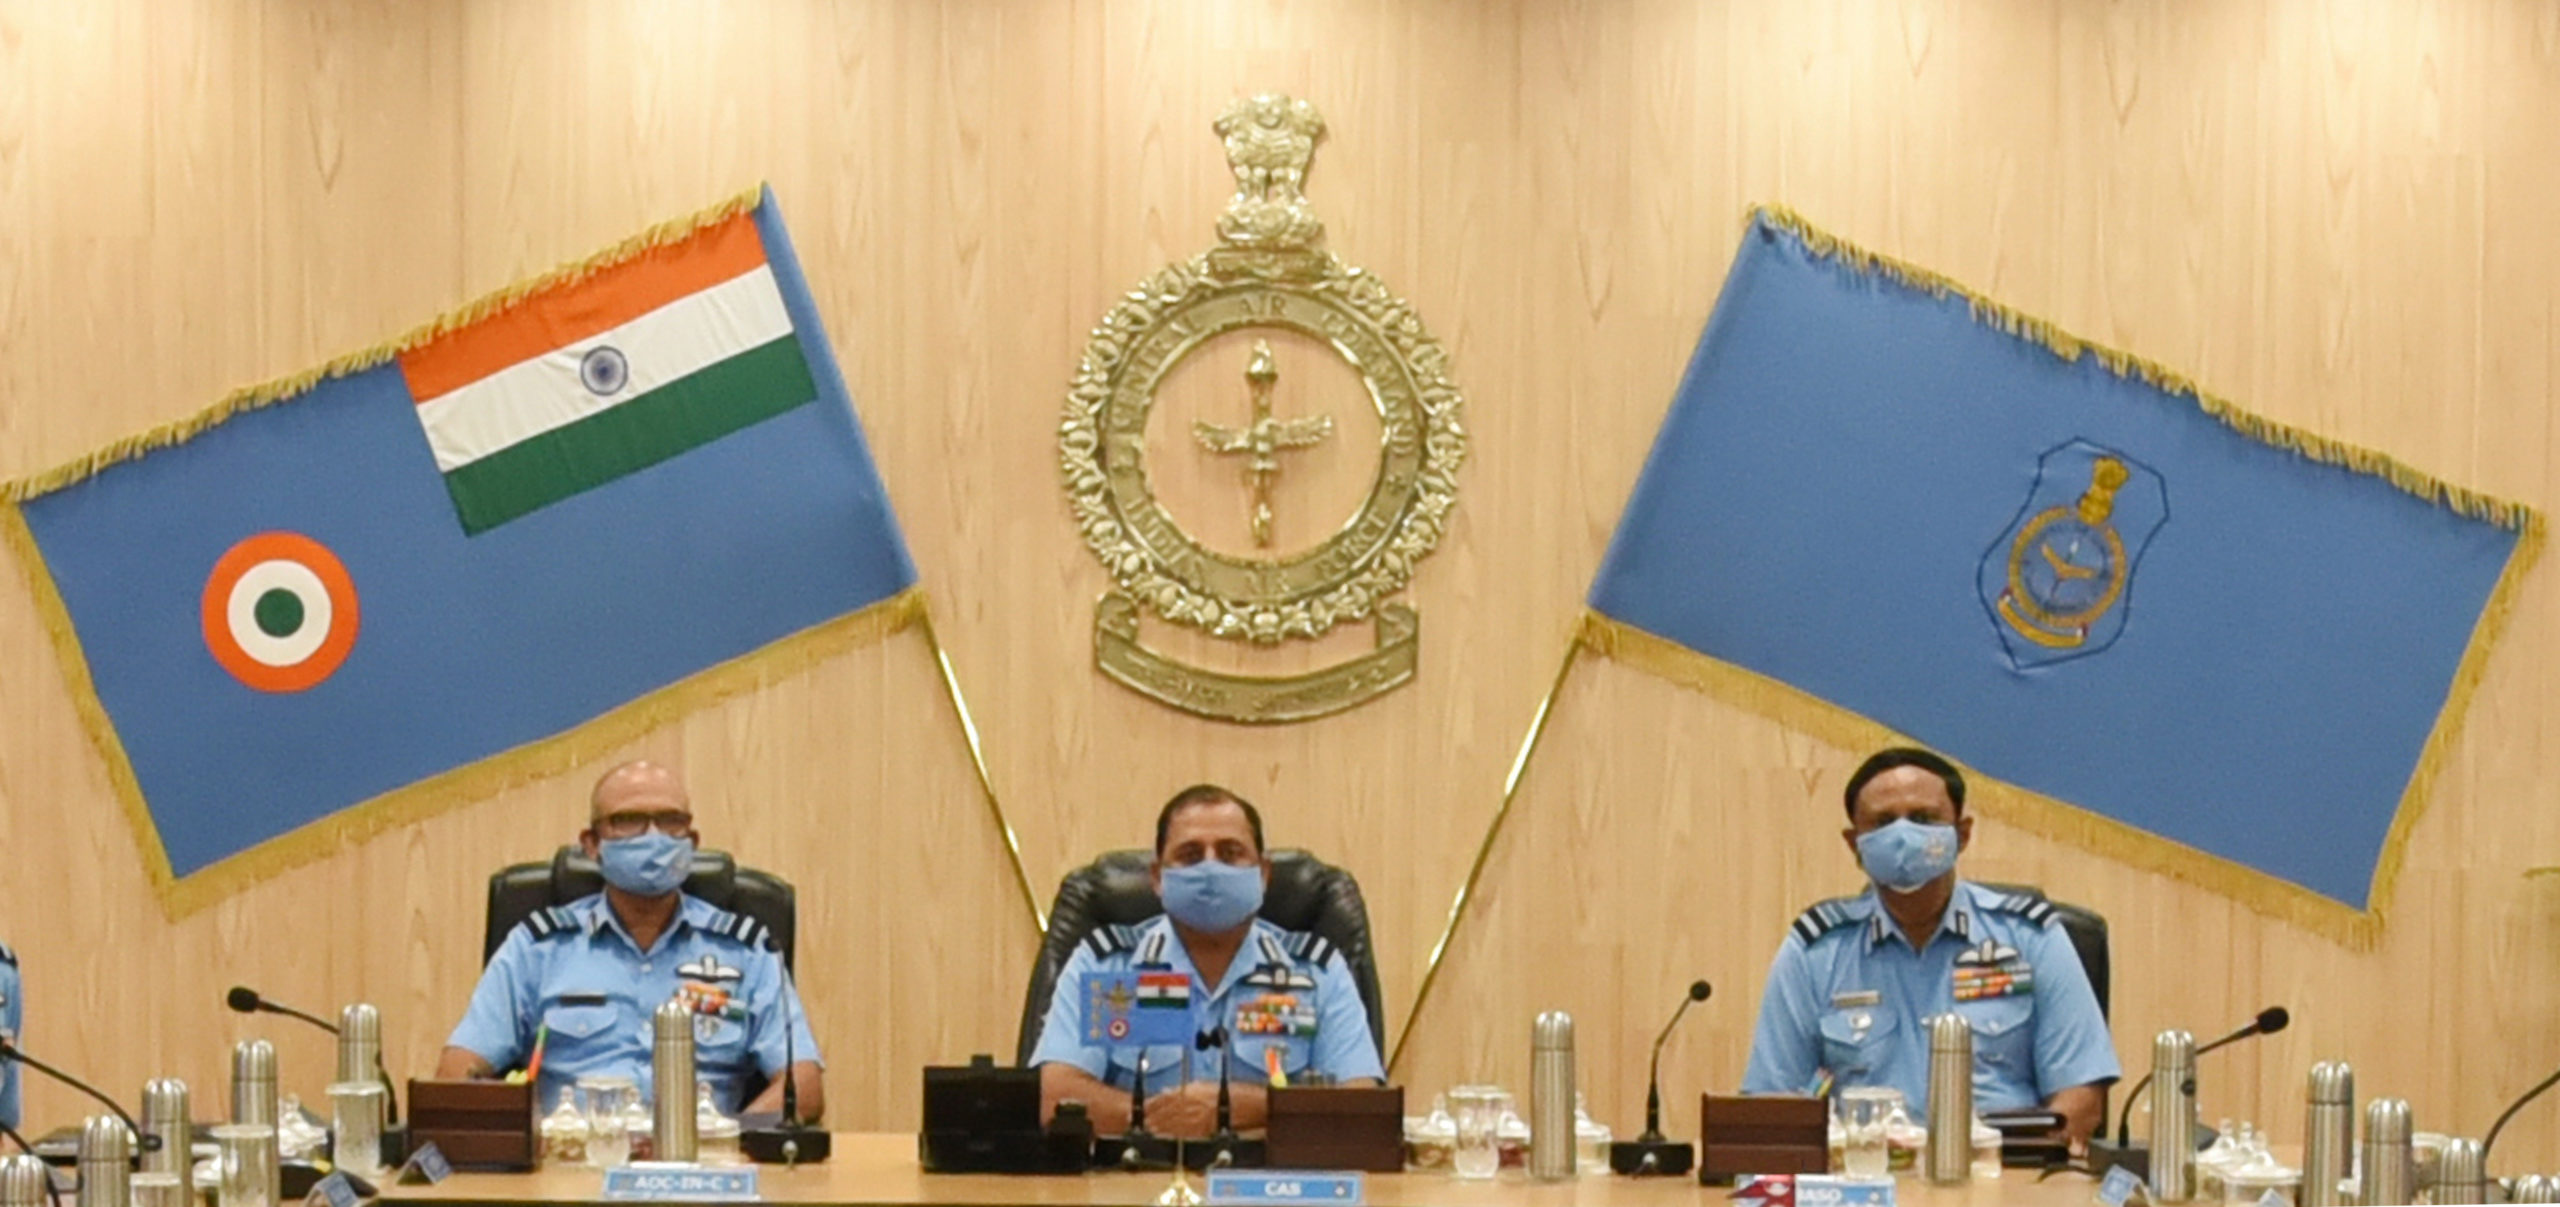 CHIEF OF THE AIR STAFF VISITS HEADQUARTERS CENTRAL AIR COMMAND